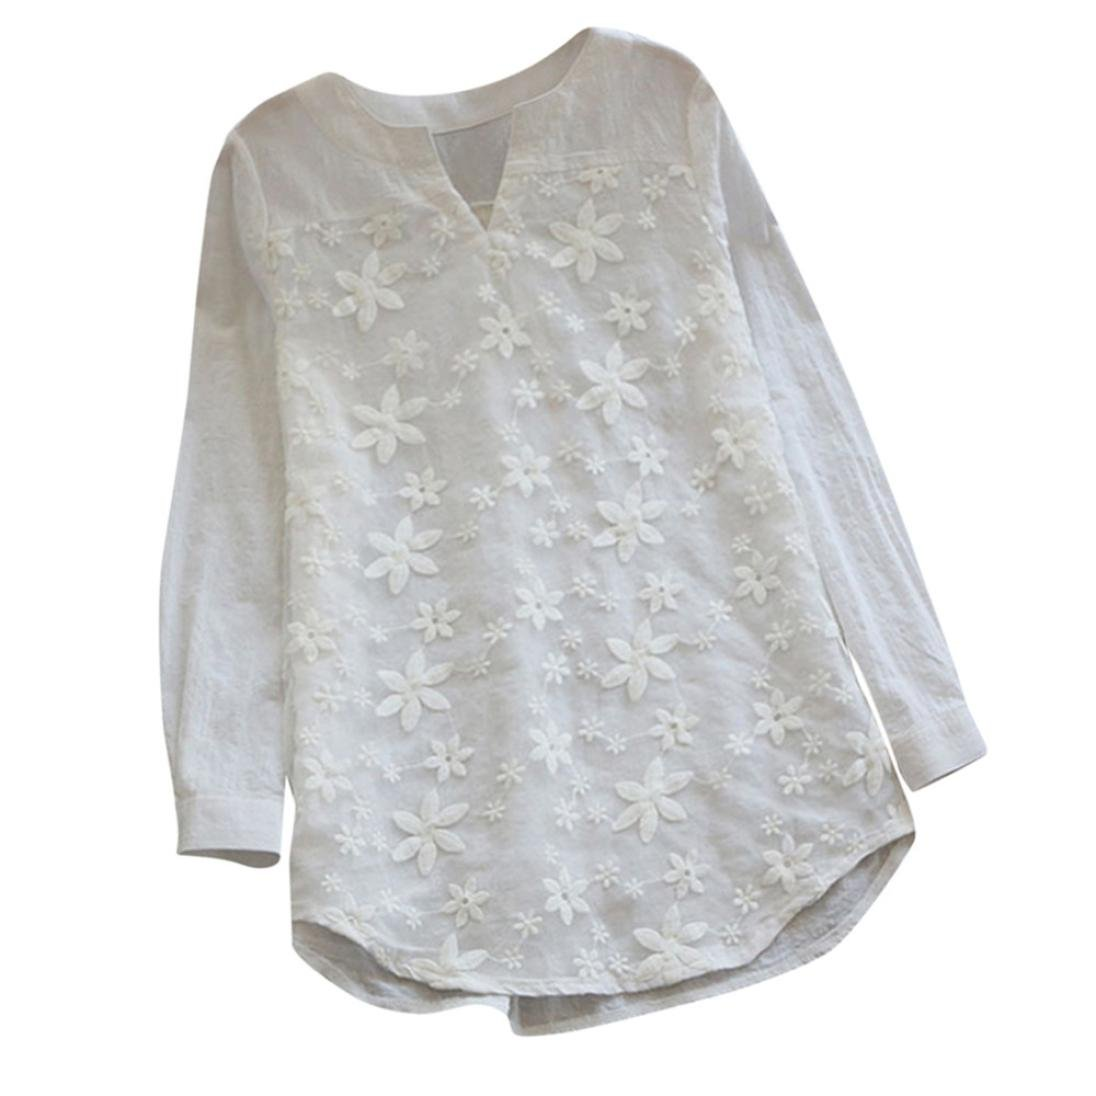 EnjoCho Women's Blouse Floral Lace Embroidery V-Neck Long Sleeve Loose Baggy Tops T Shirt for Women (Size:M, White)